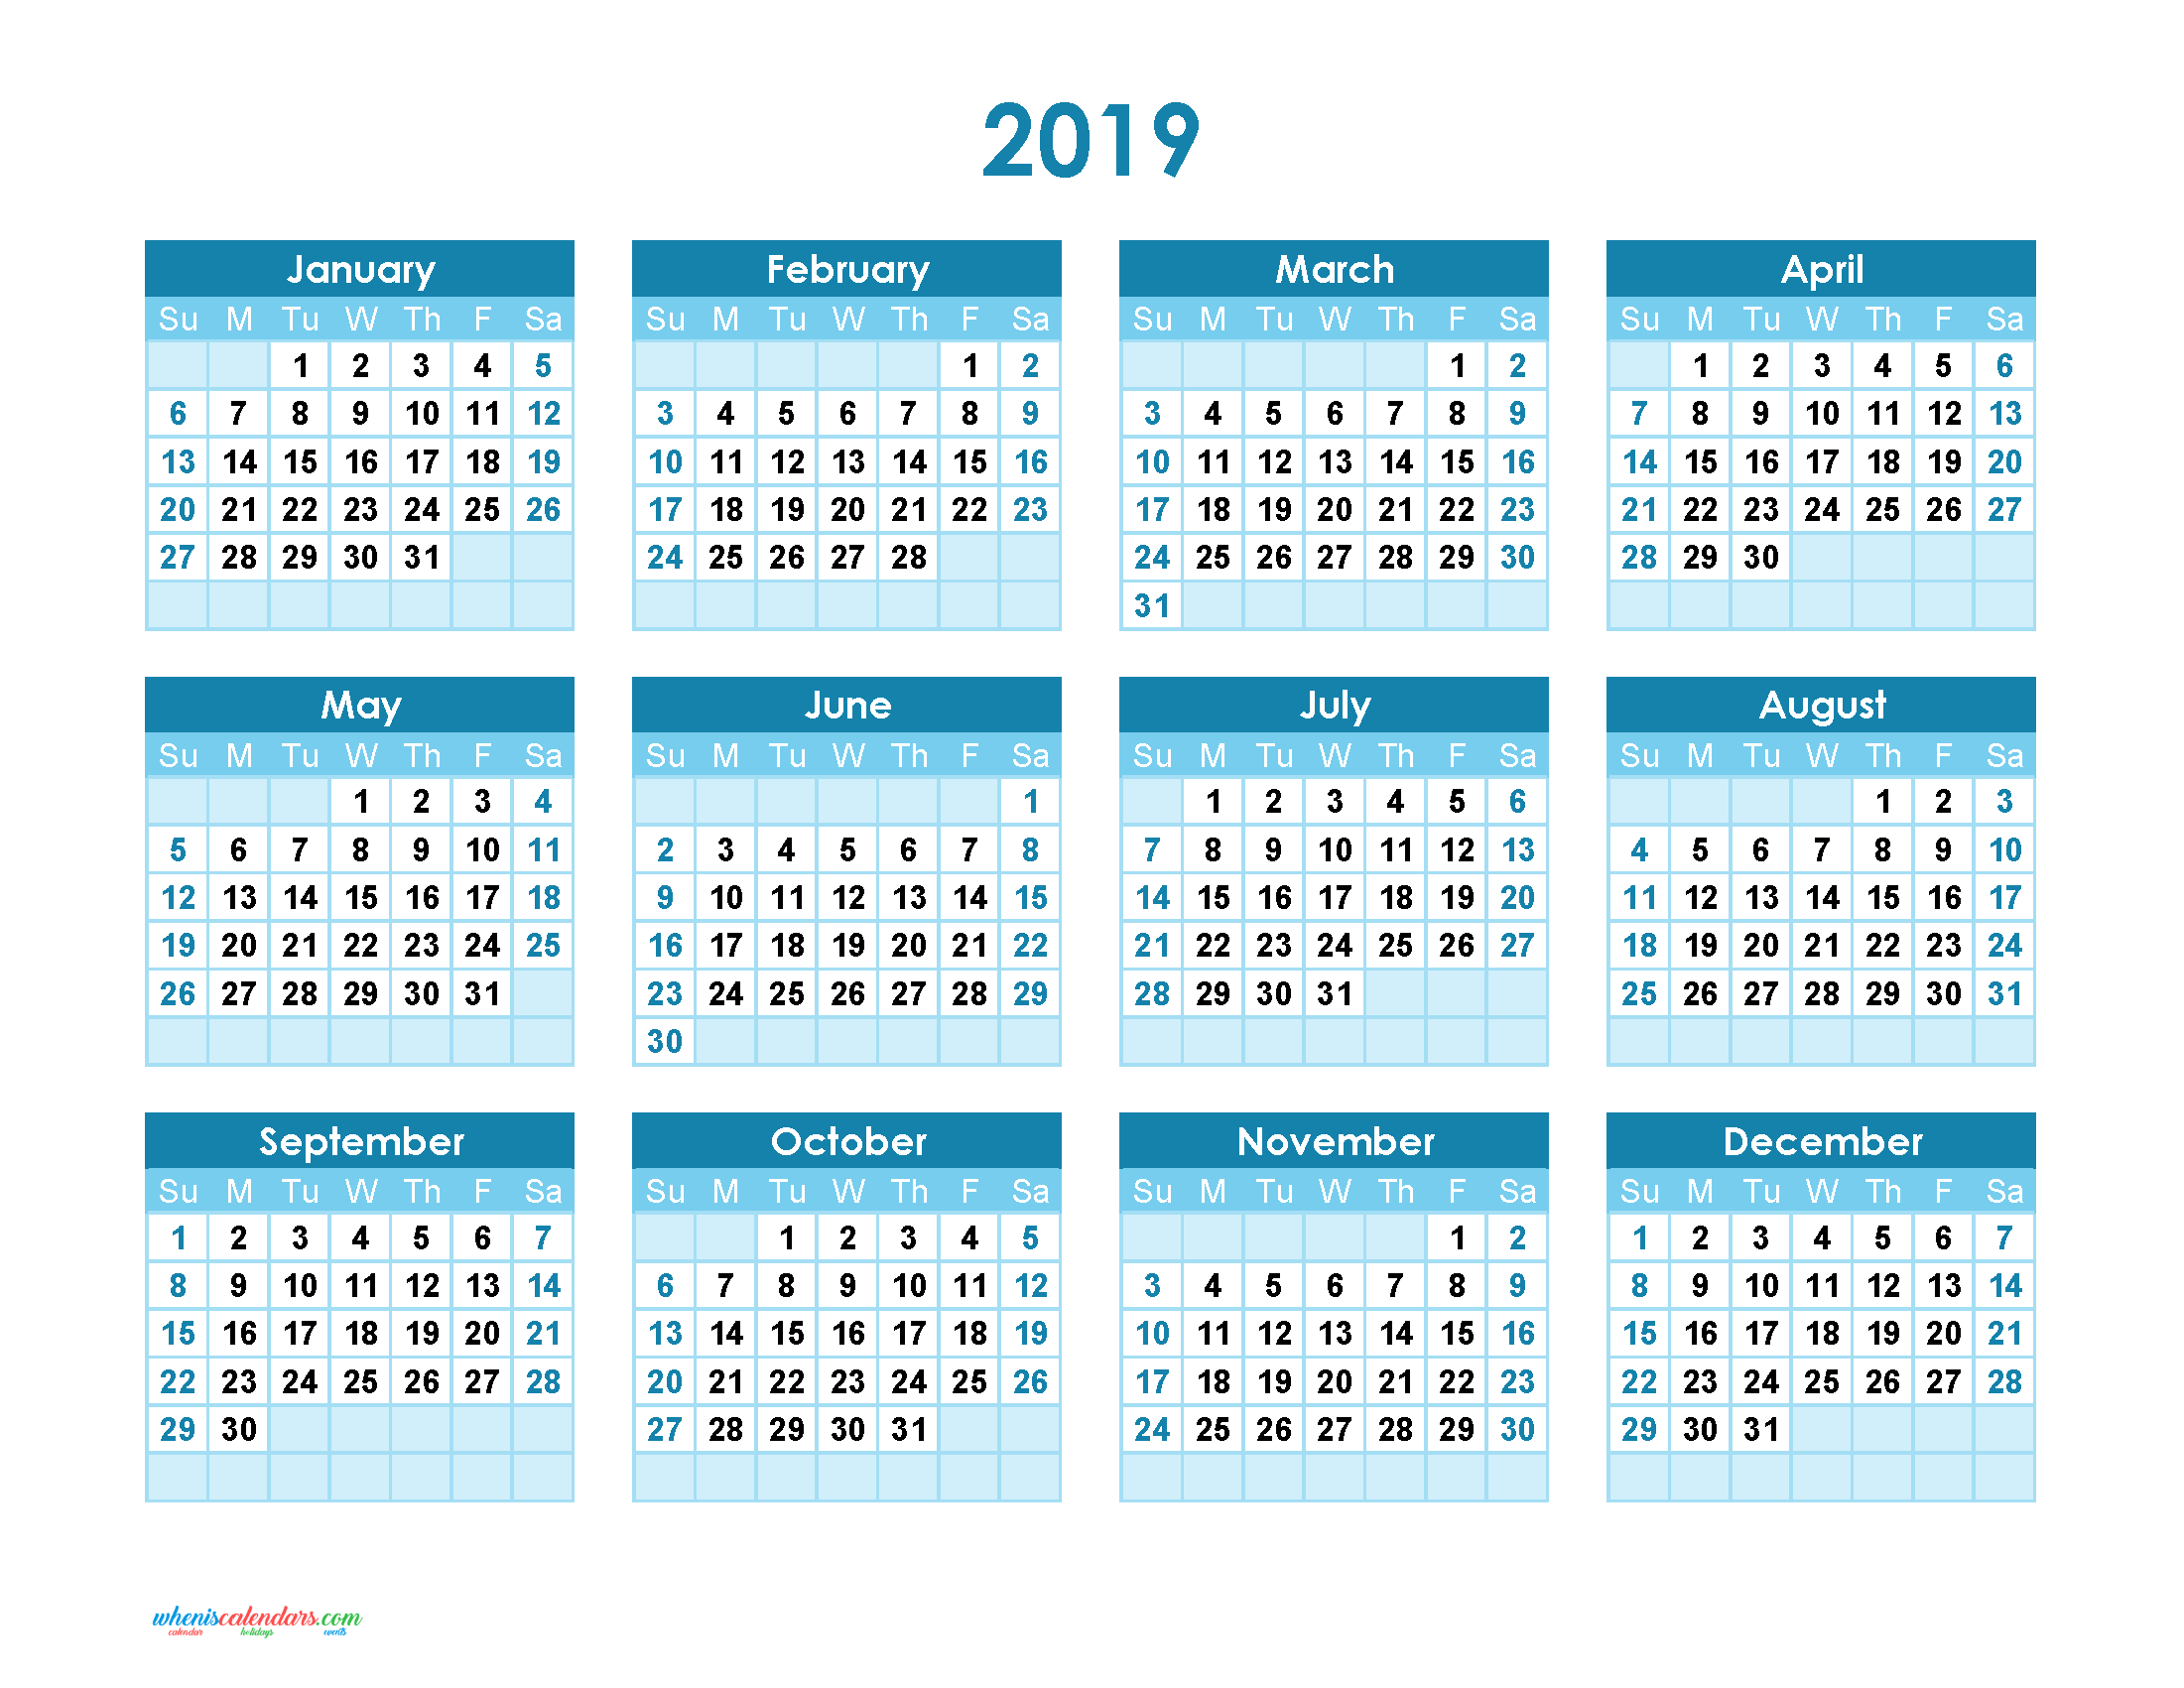 Yearly Calendar 2019 Printable. Annual Calendar 2019 for Free